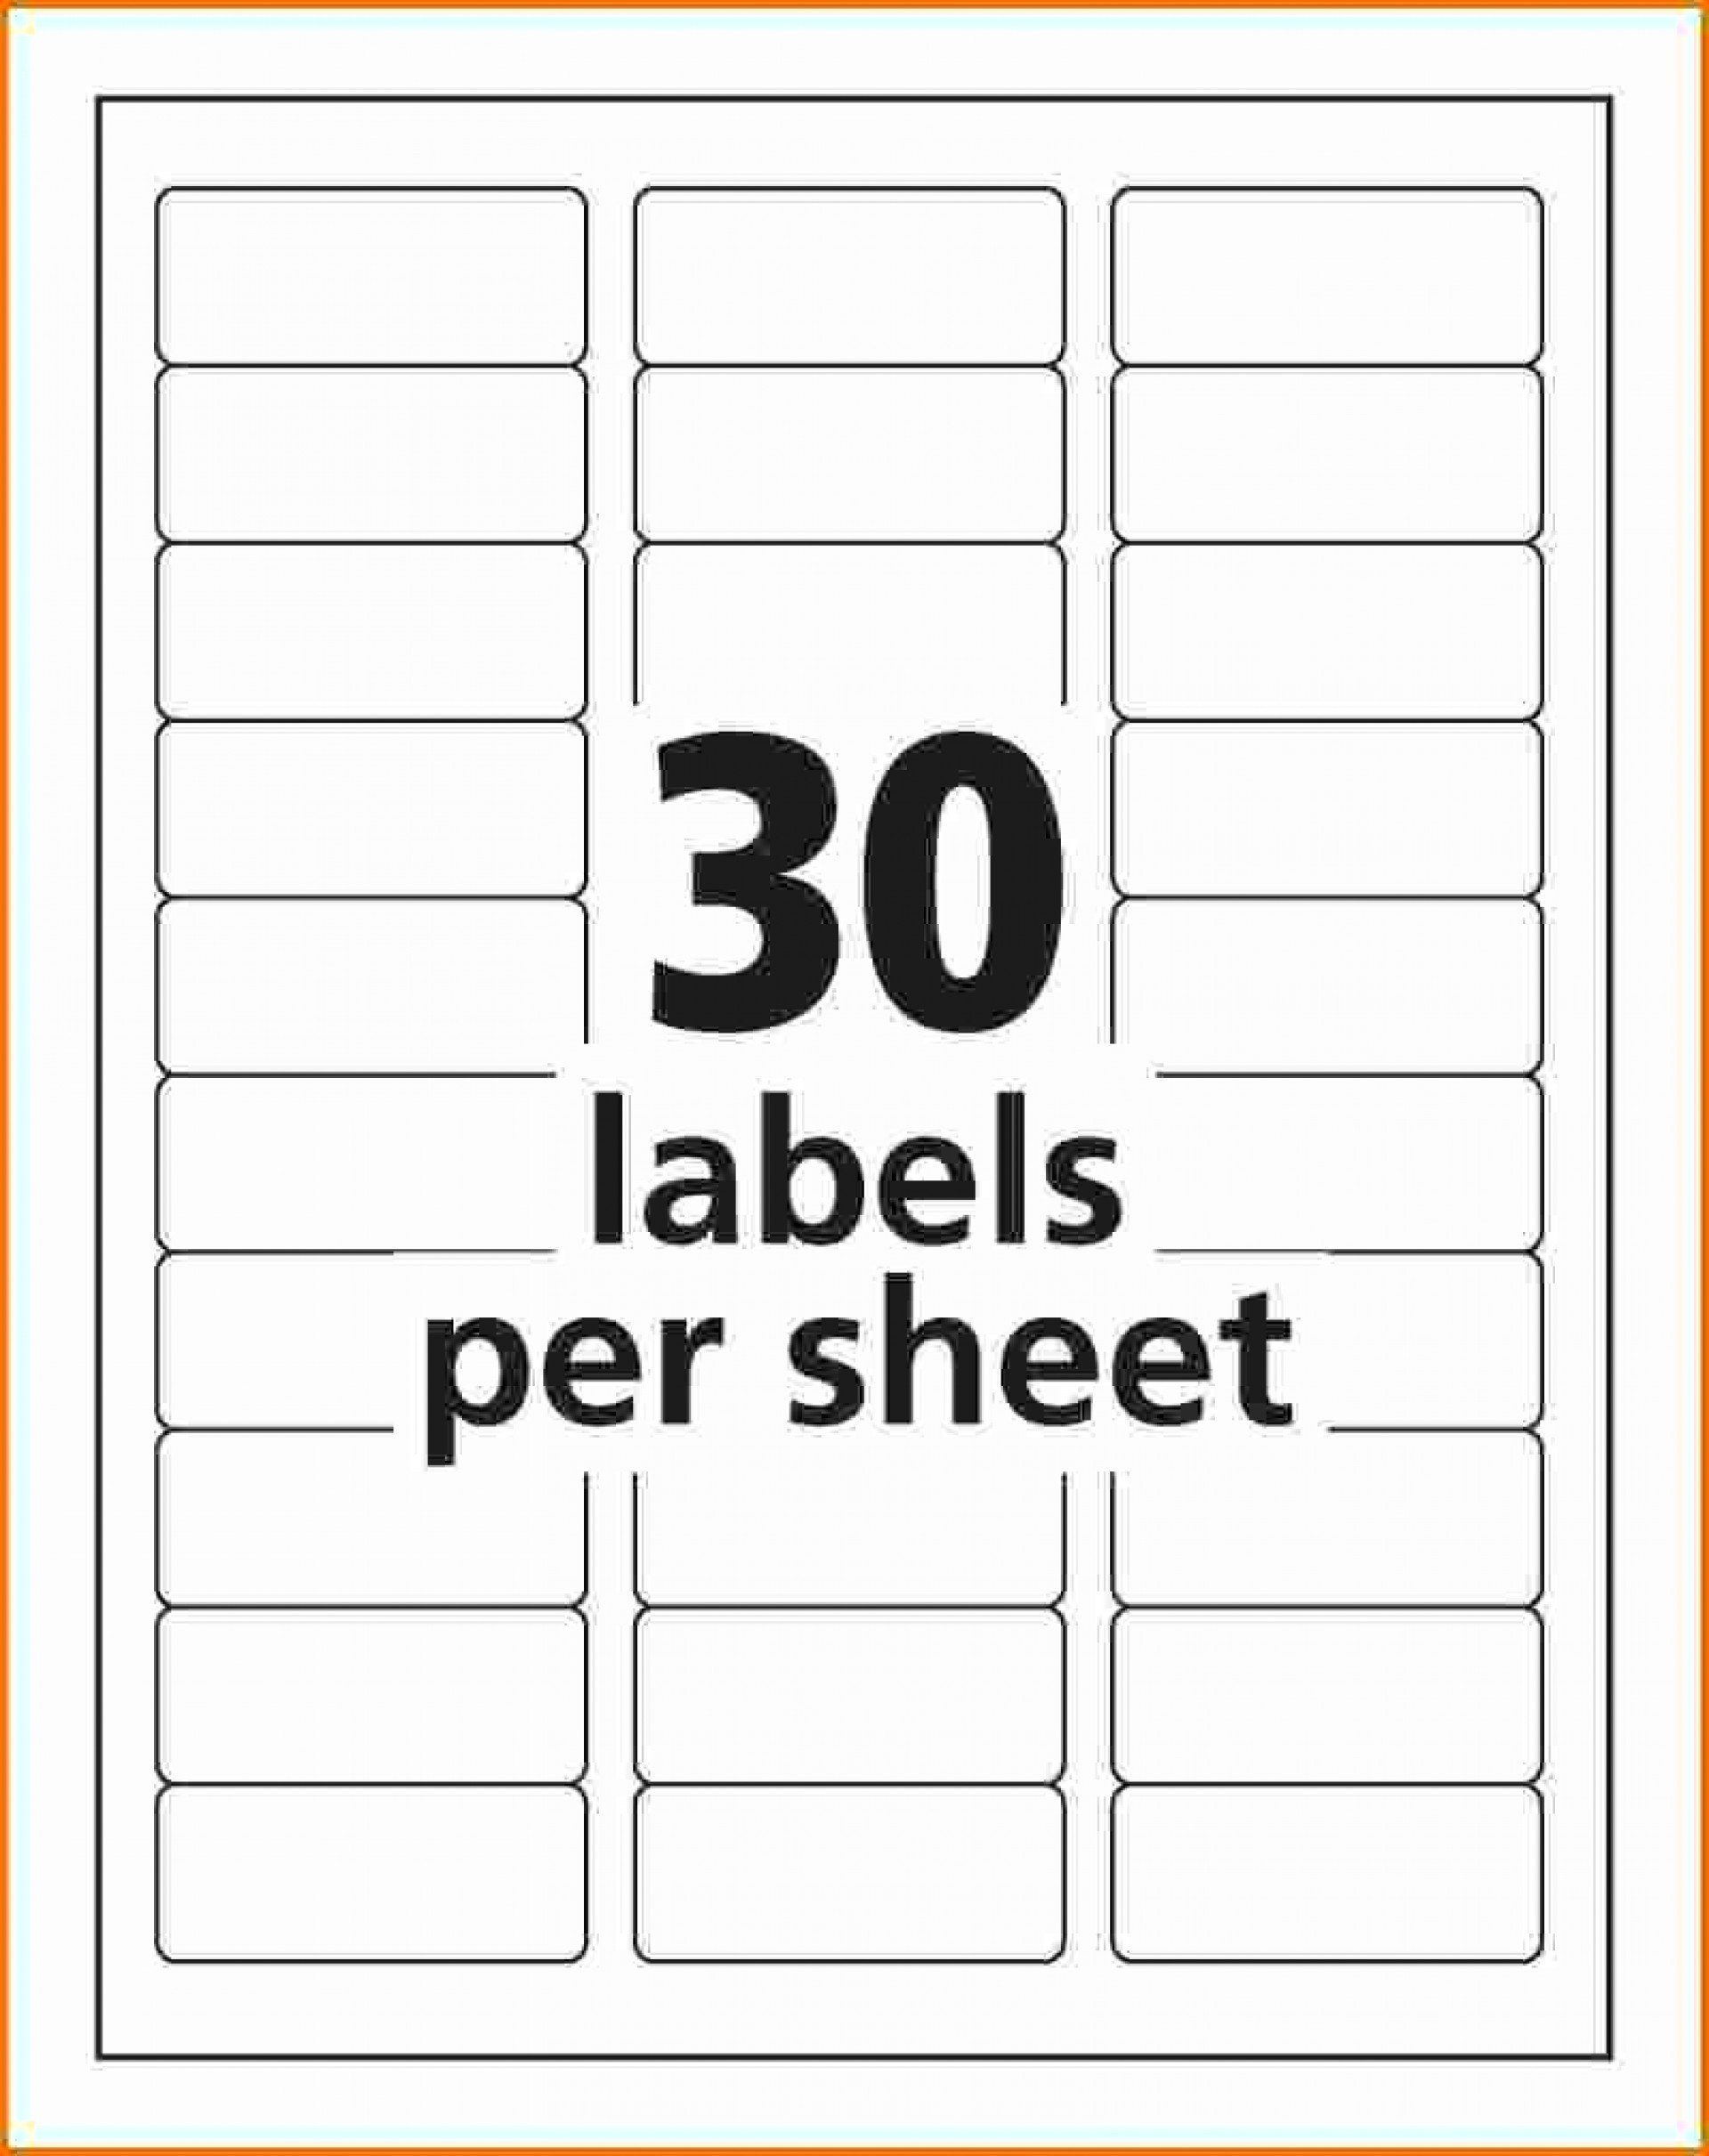 Template Ideas Free Printable Address Label Templates Imposing Intended For Address Label Template For Mac